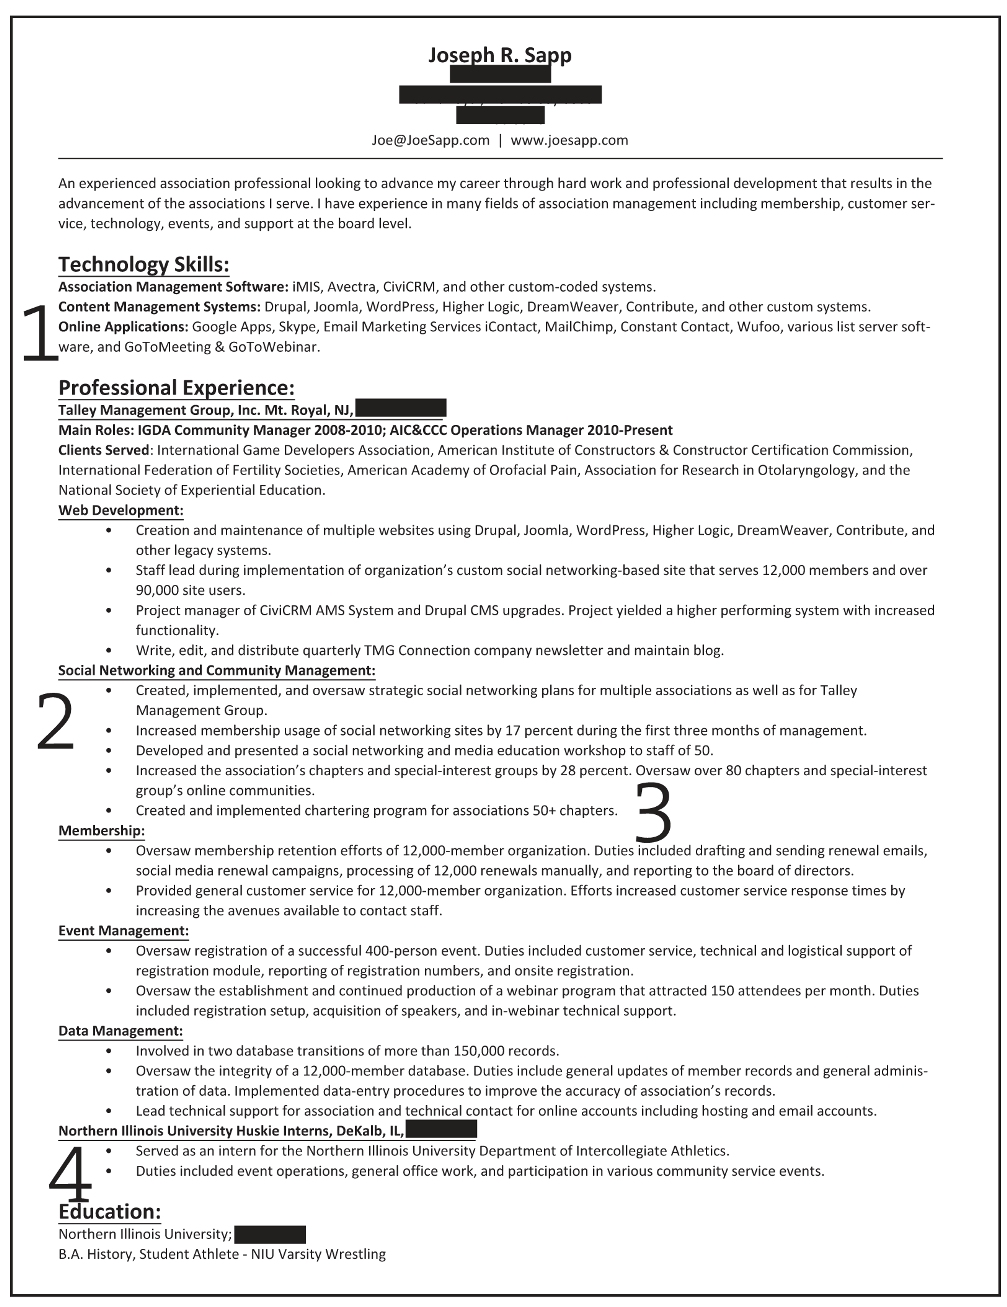 professional summary resume templates hirepowersnet resume summary